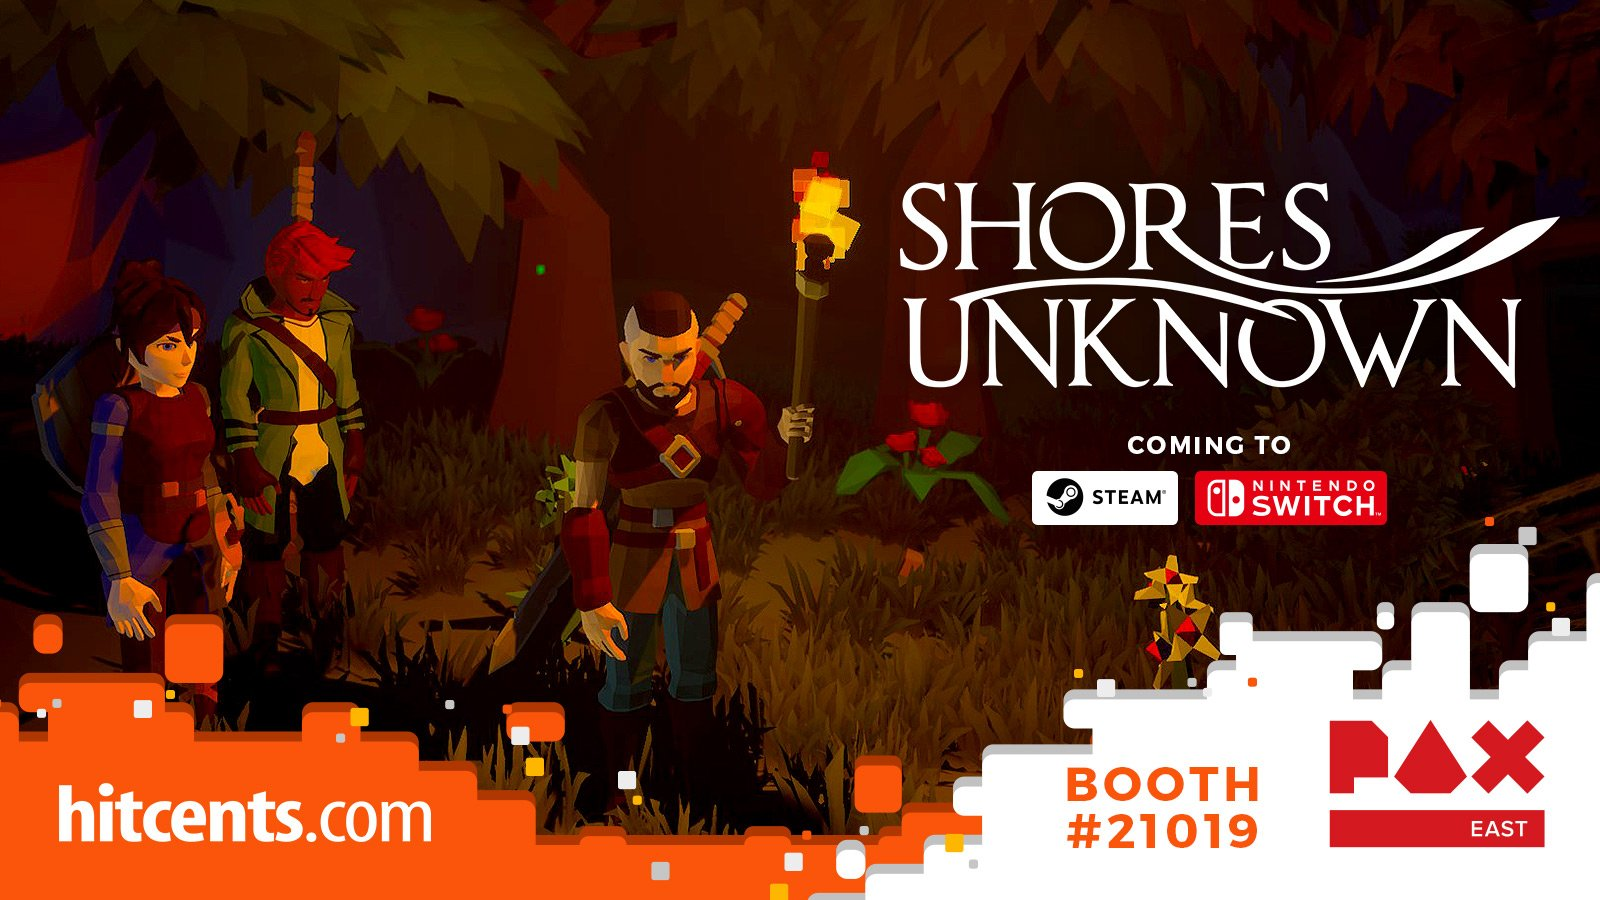 Hitcents_PAX East_Social Graphics_Shores Unknown 3.jpg